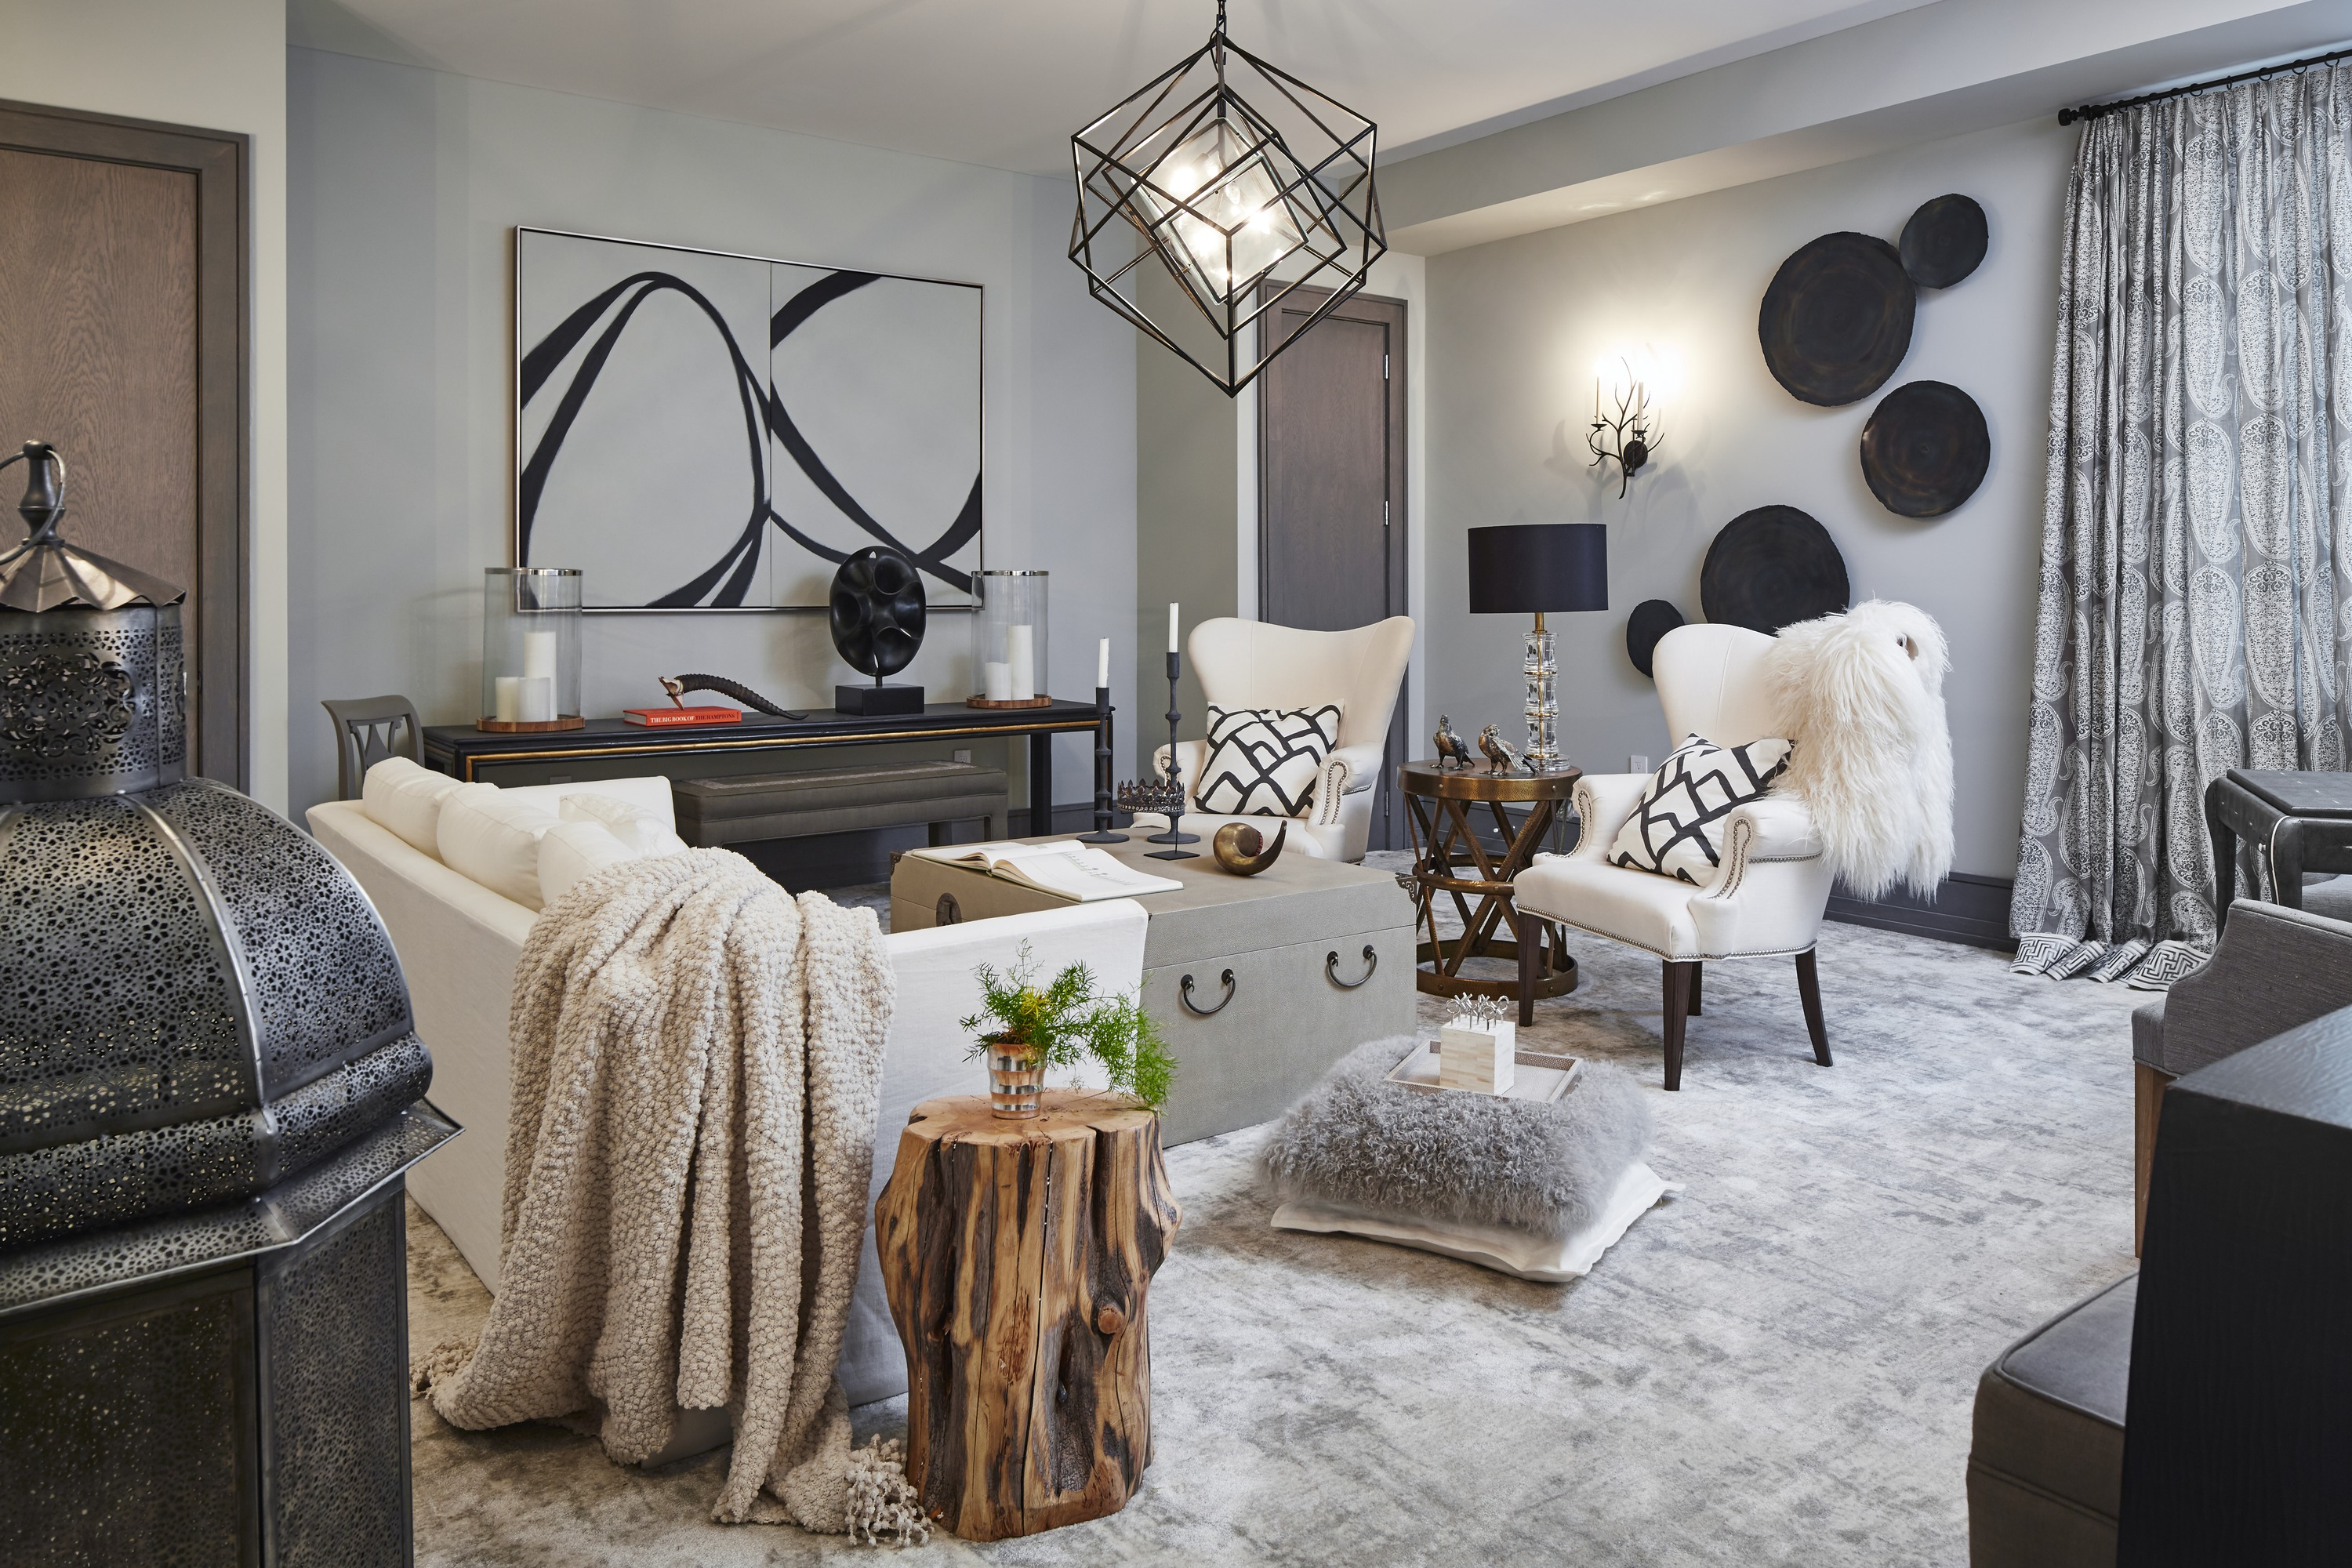 A game room in the lower level is a portrait of cozy, sporting faux fur and heavy knit throws at every turn. Creams, grays and black highlights keep the palette simple and classic.